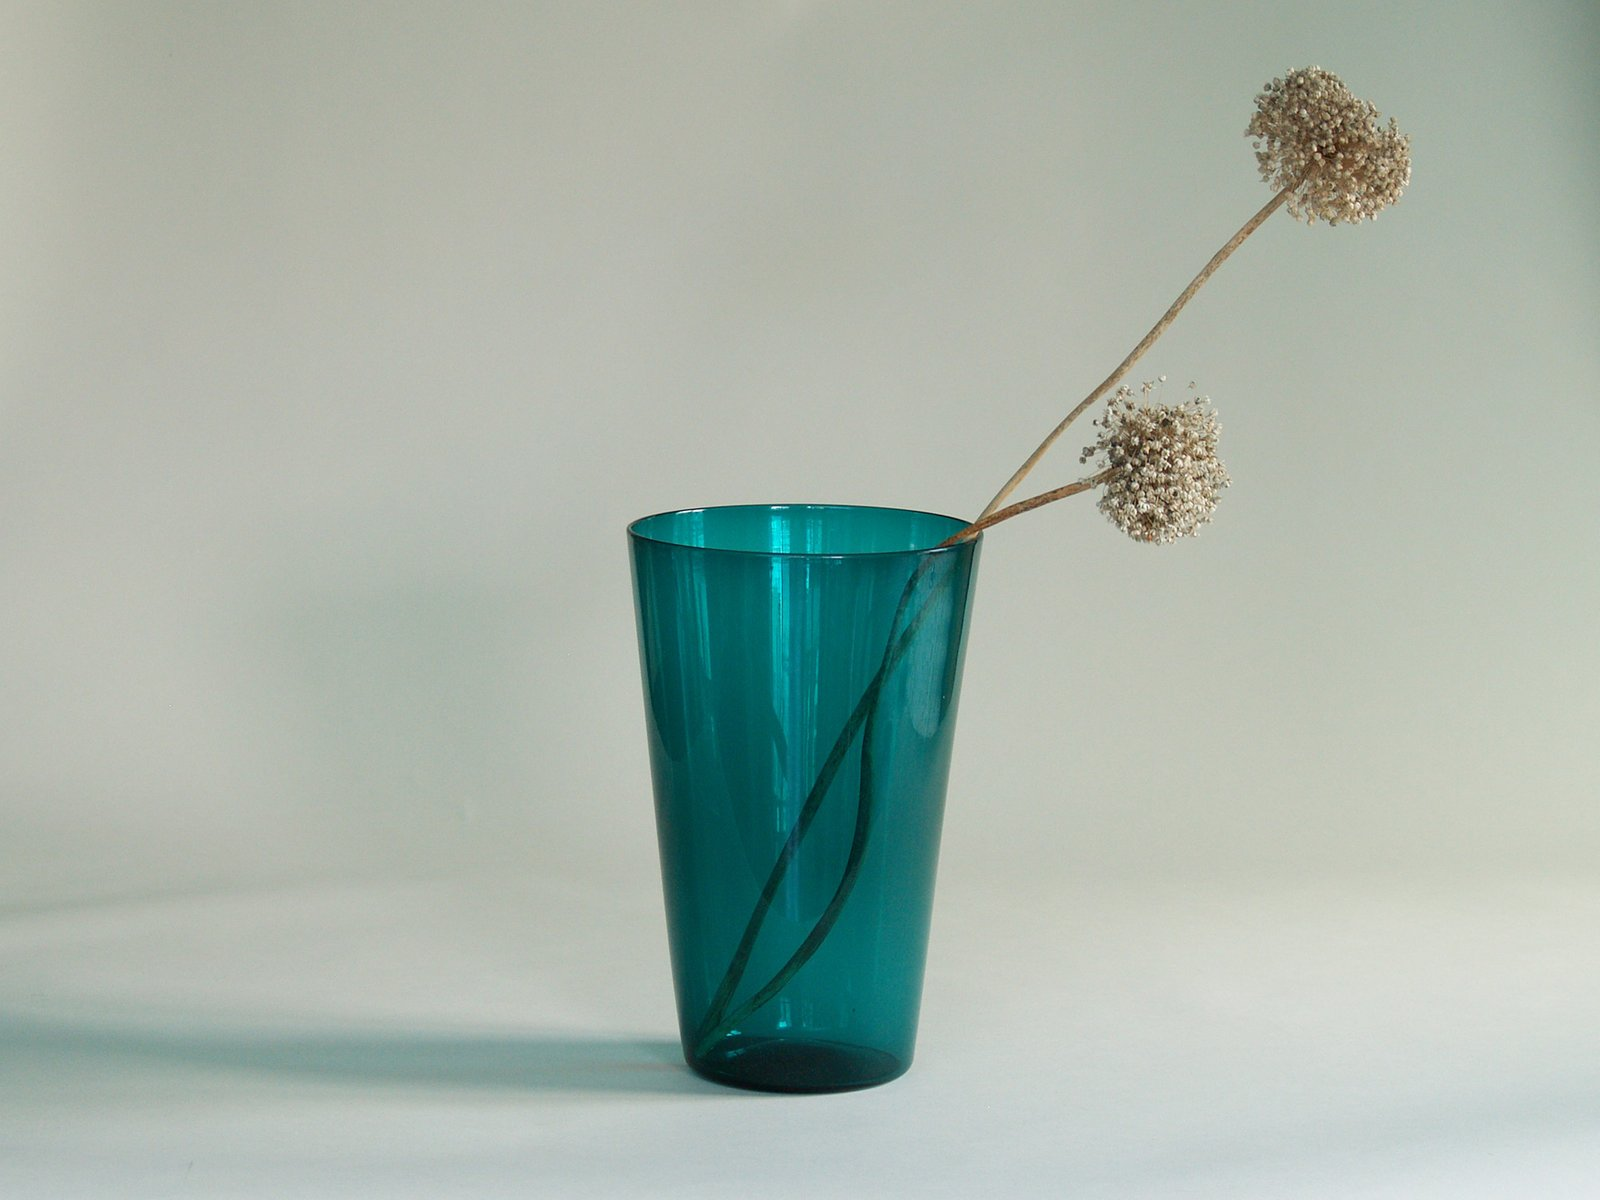 Italian vase by carlo scarpa for venini 1940s for sale at pamono previous floridaeventfo Image collections